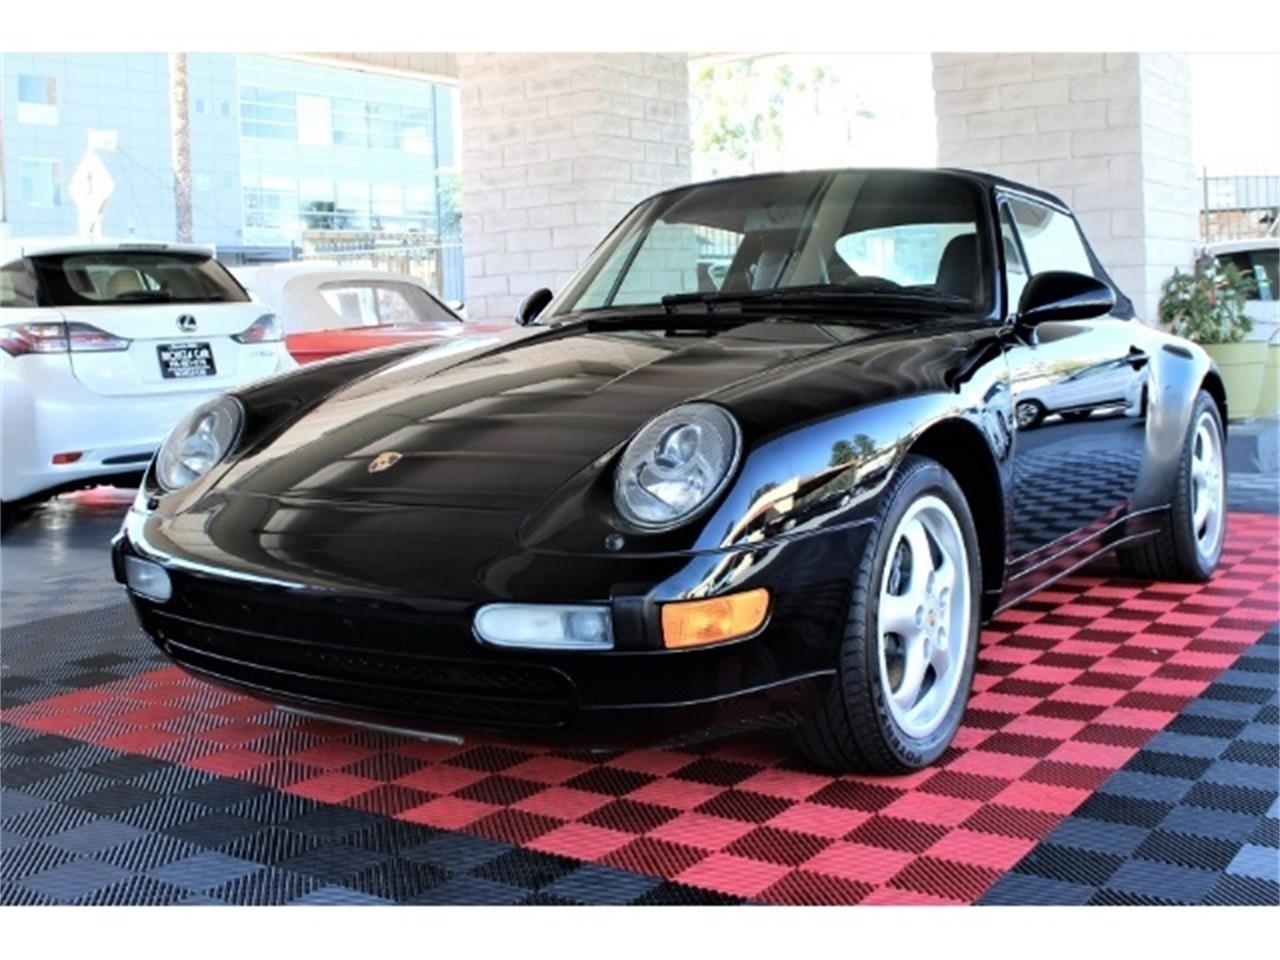 Large Picture of '98 Porsche 911 Carrera located in California Offered by Monza Car - PMWM